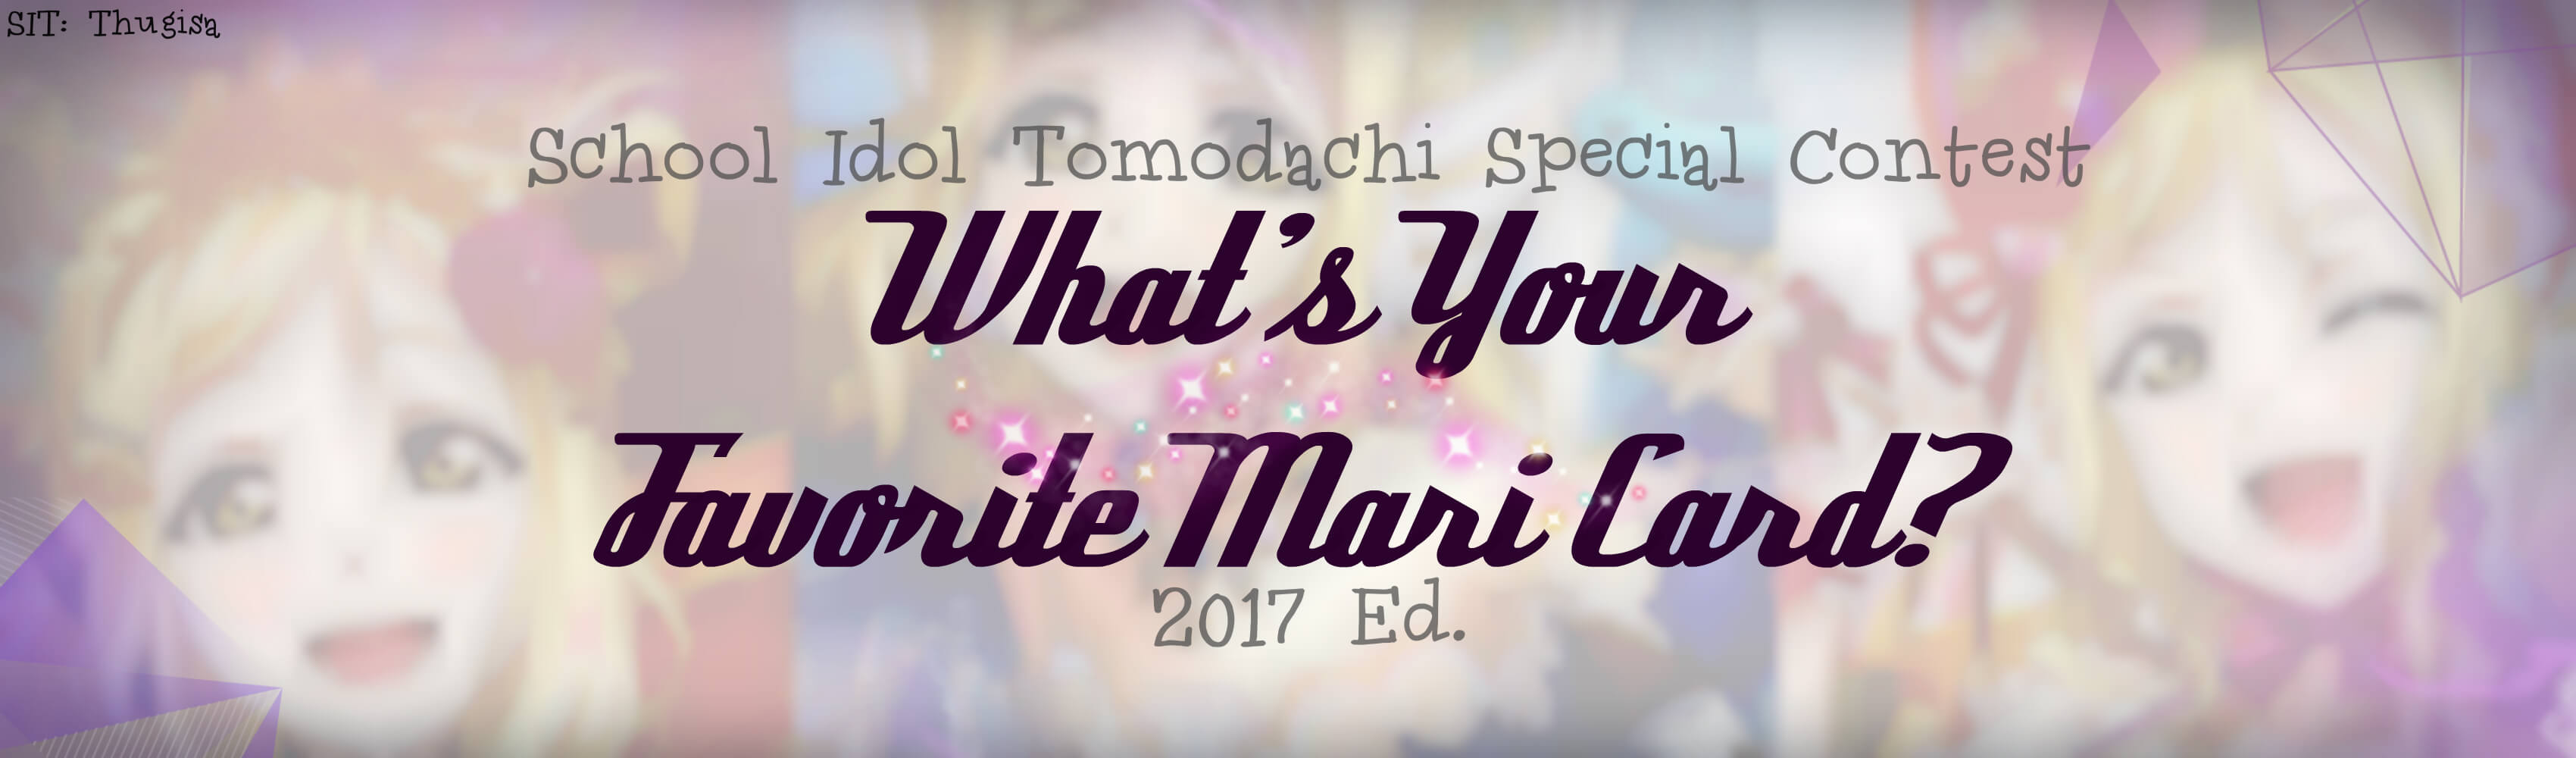 What's your favorite Mari card? 2017 ed.